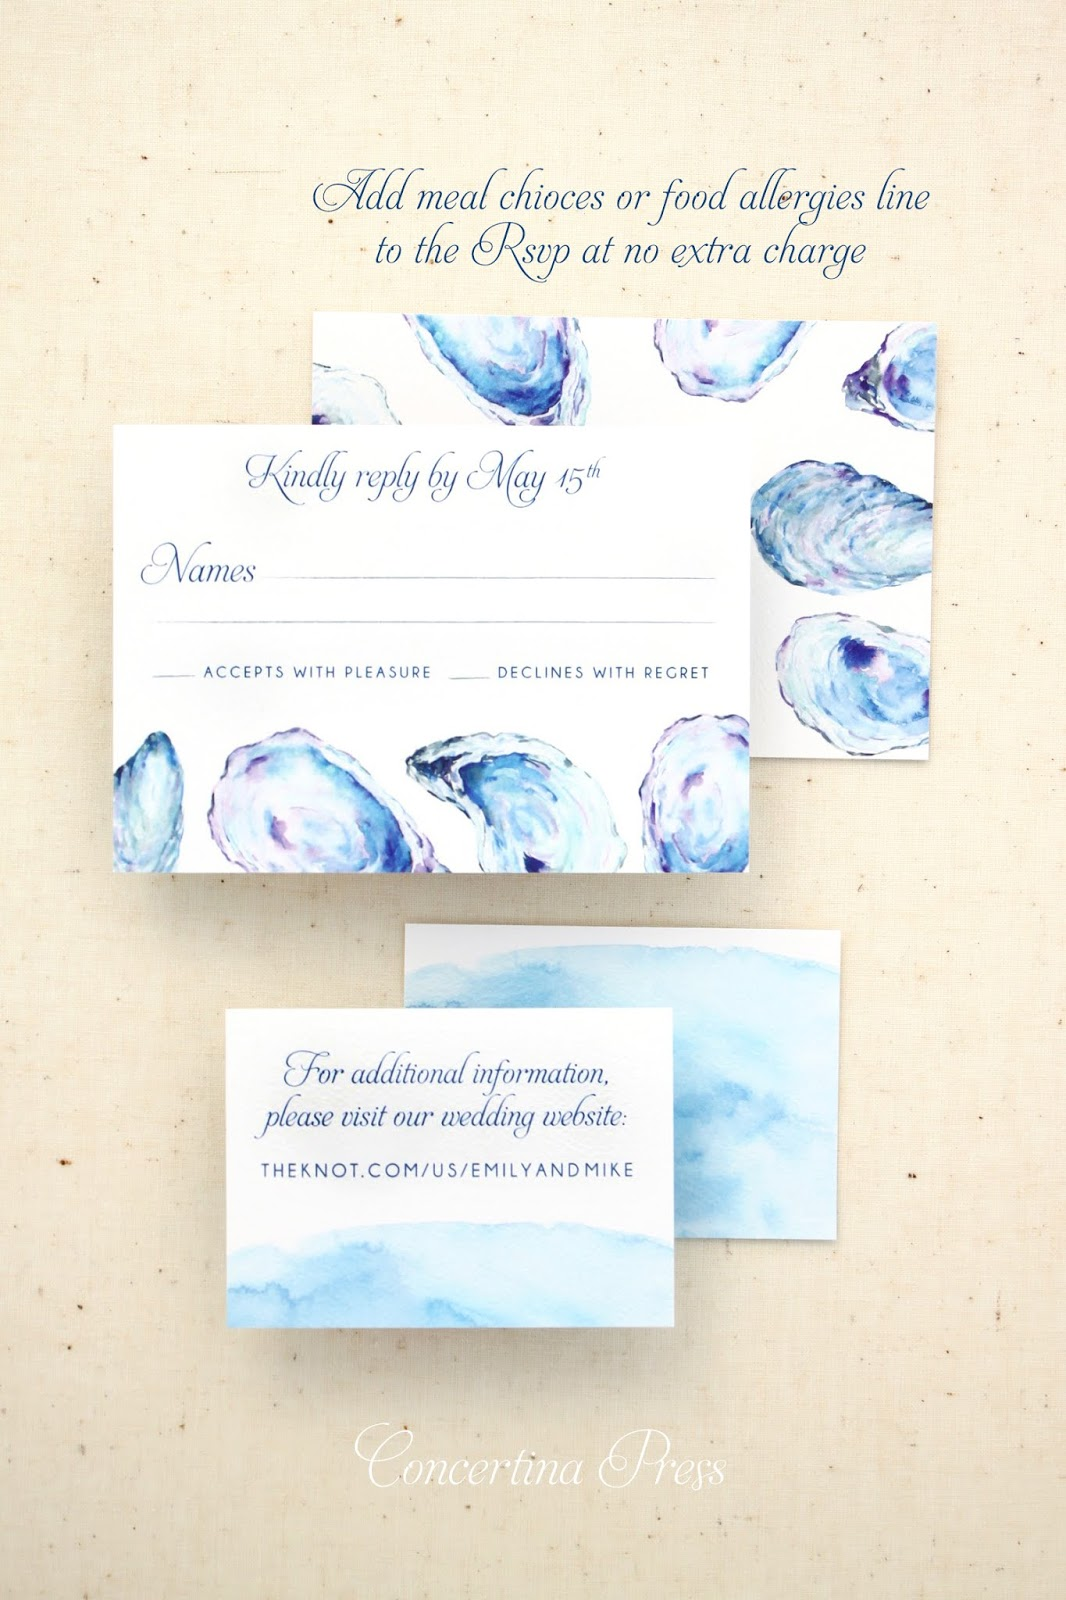 Oyster Beach Wedding Invitation RSVP and Website Card from Concertina Press